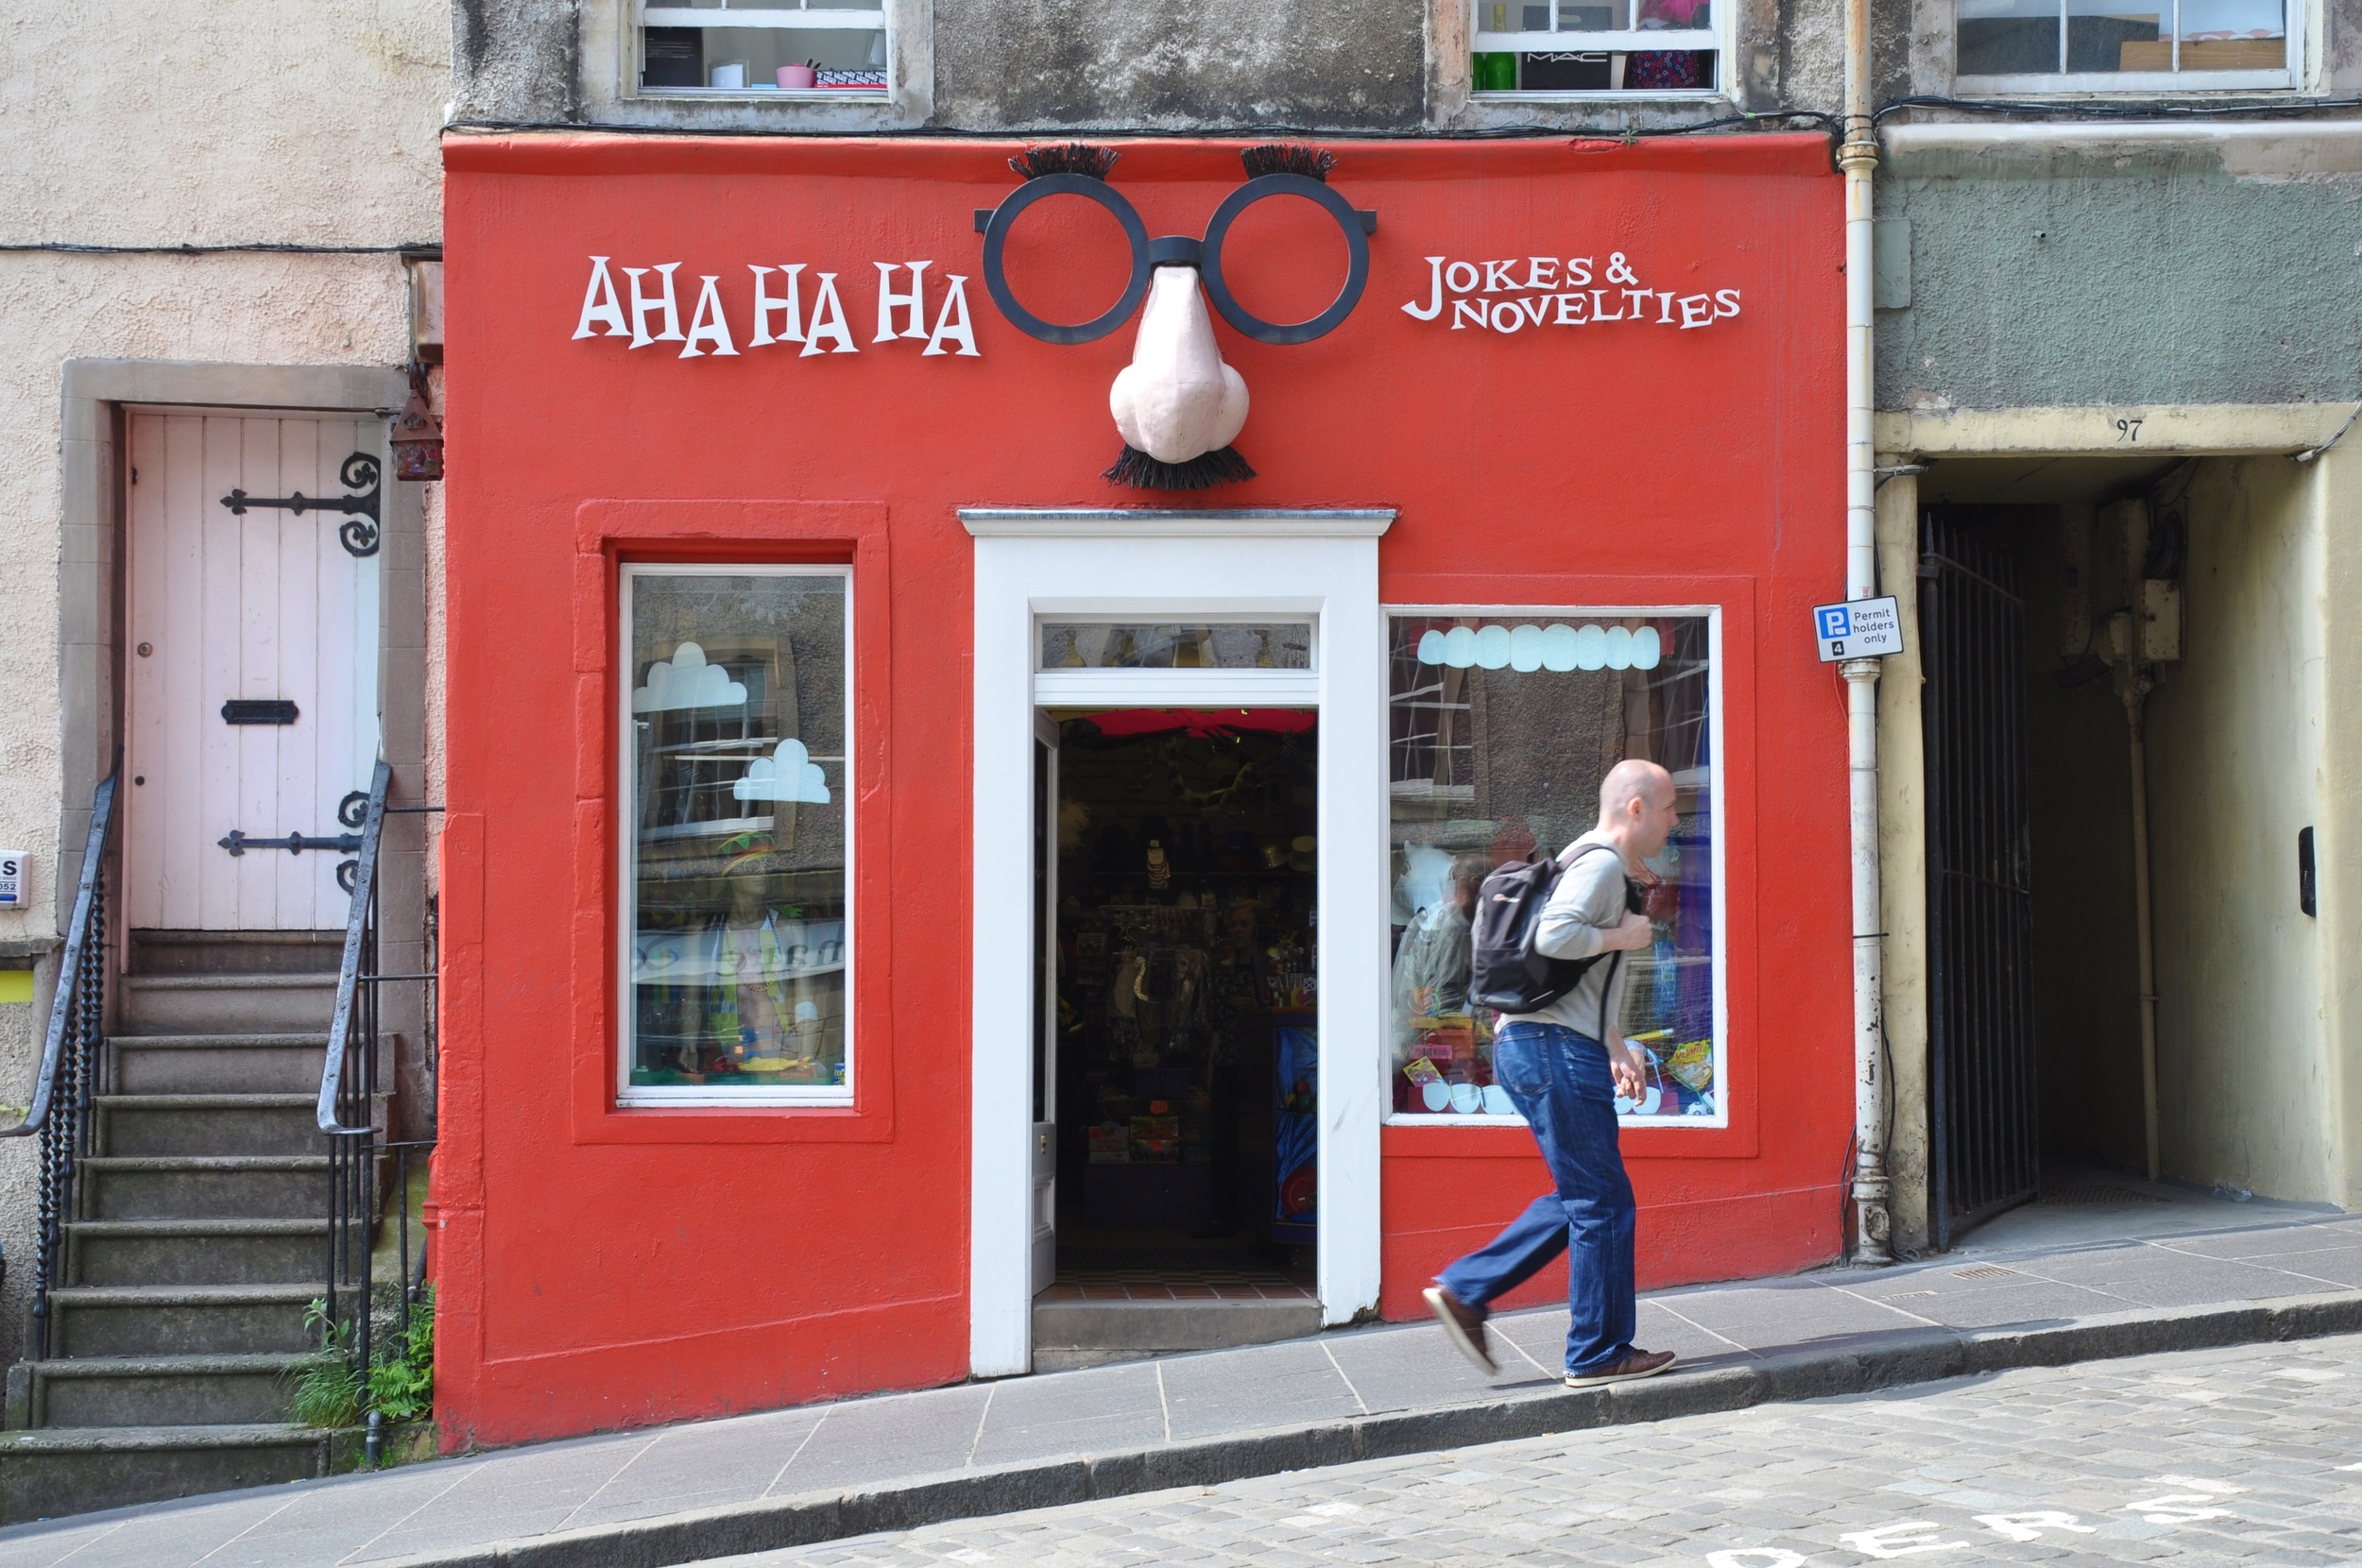 AHA HA HA jokes and novelties, 99 West Bow, Edinburgh, EH1 2JP  | Source: WikiCommons